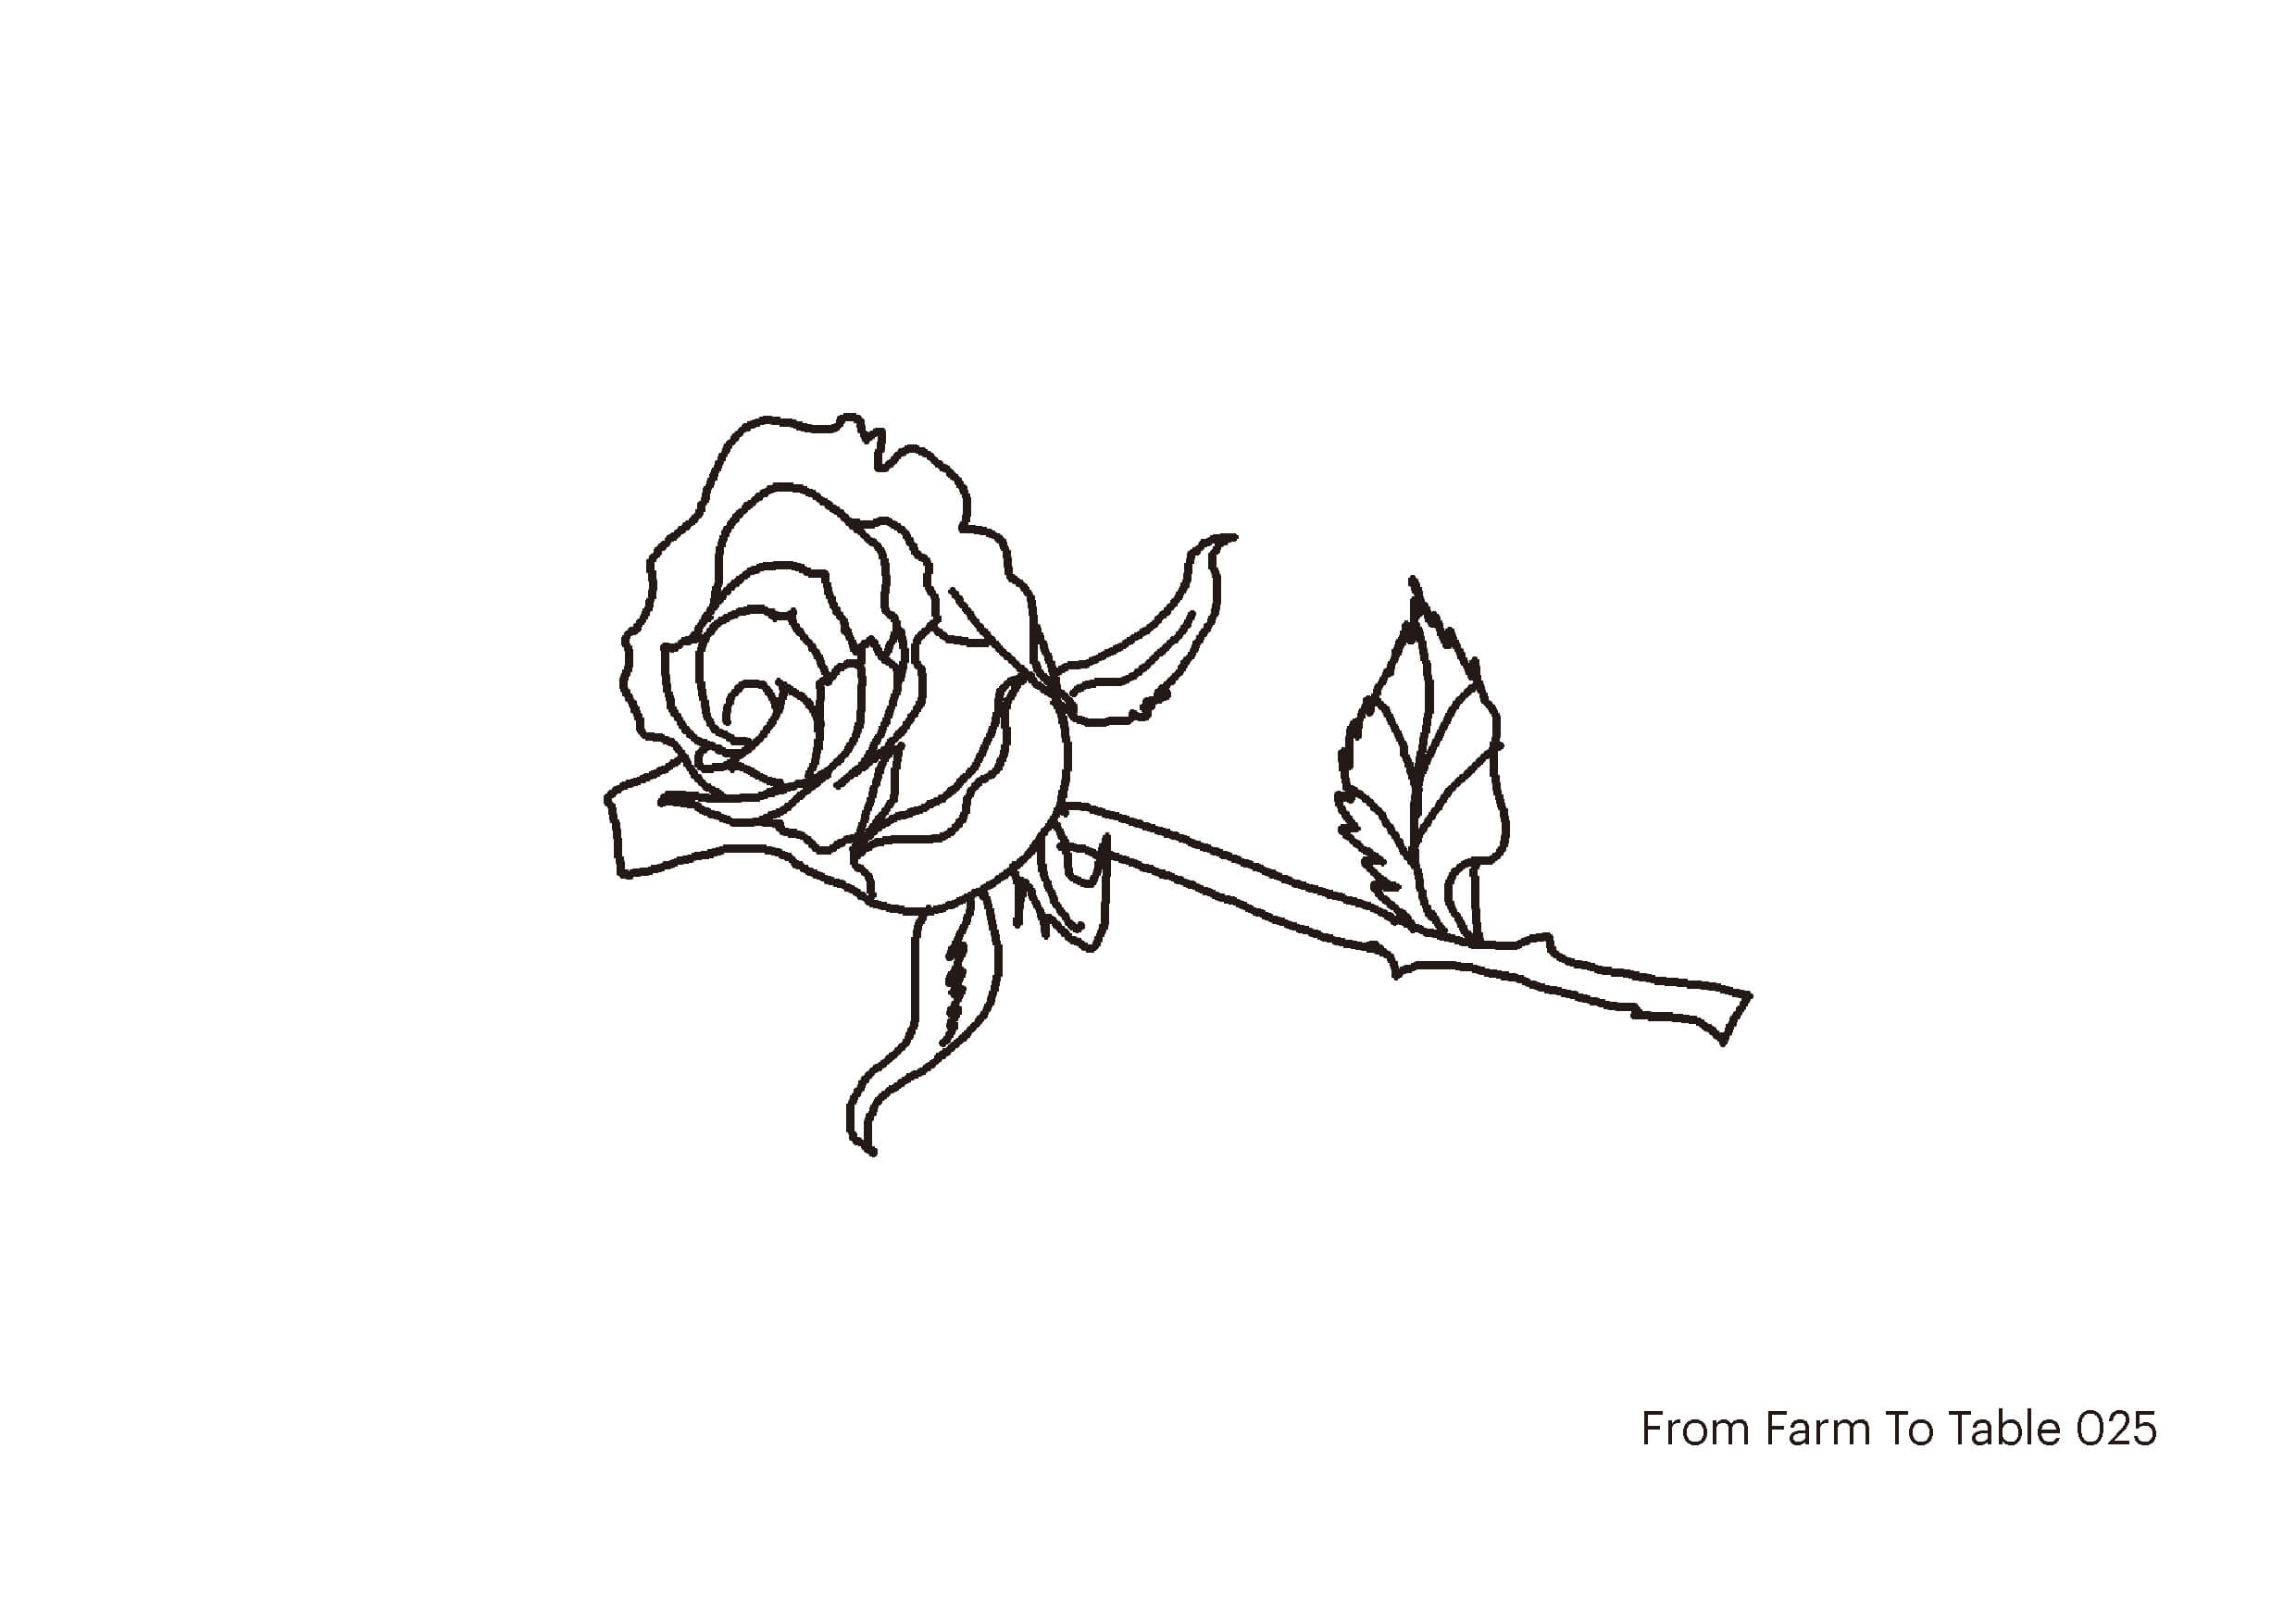 farm to table - Don_s drawing-25web.jpg